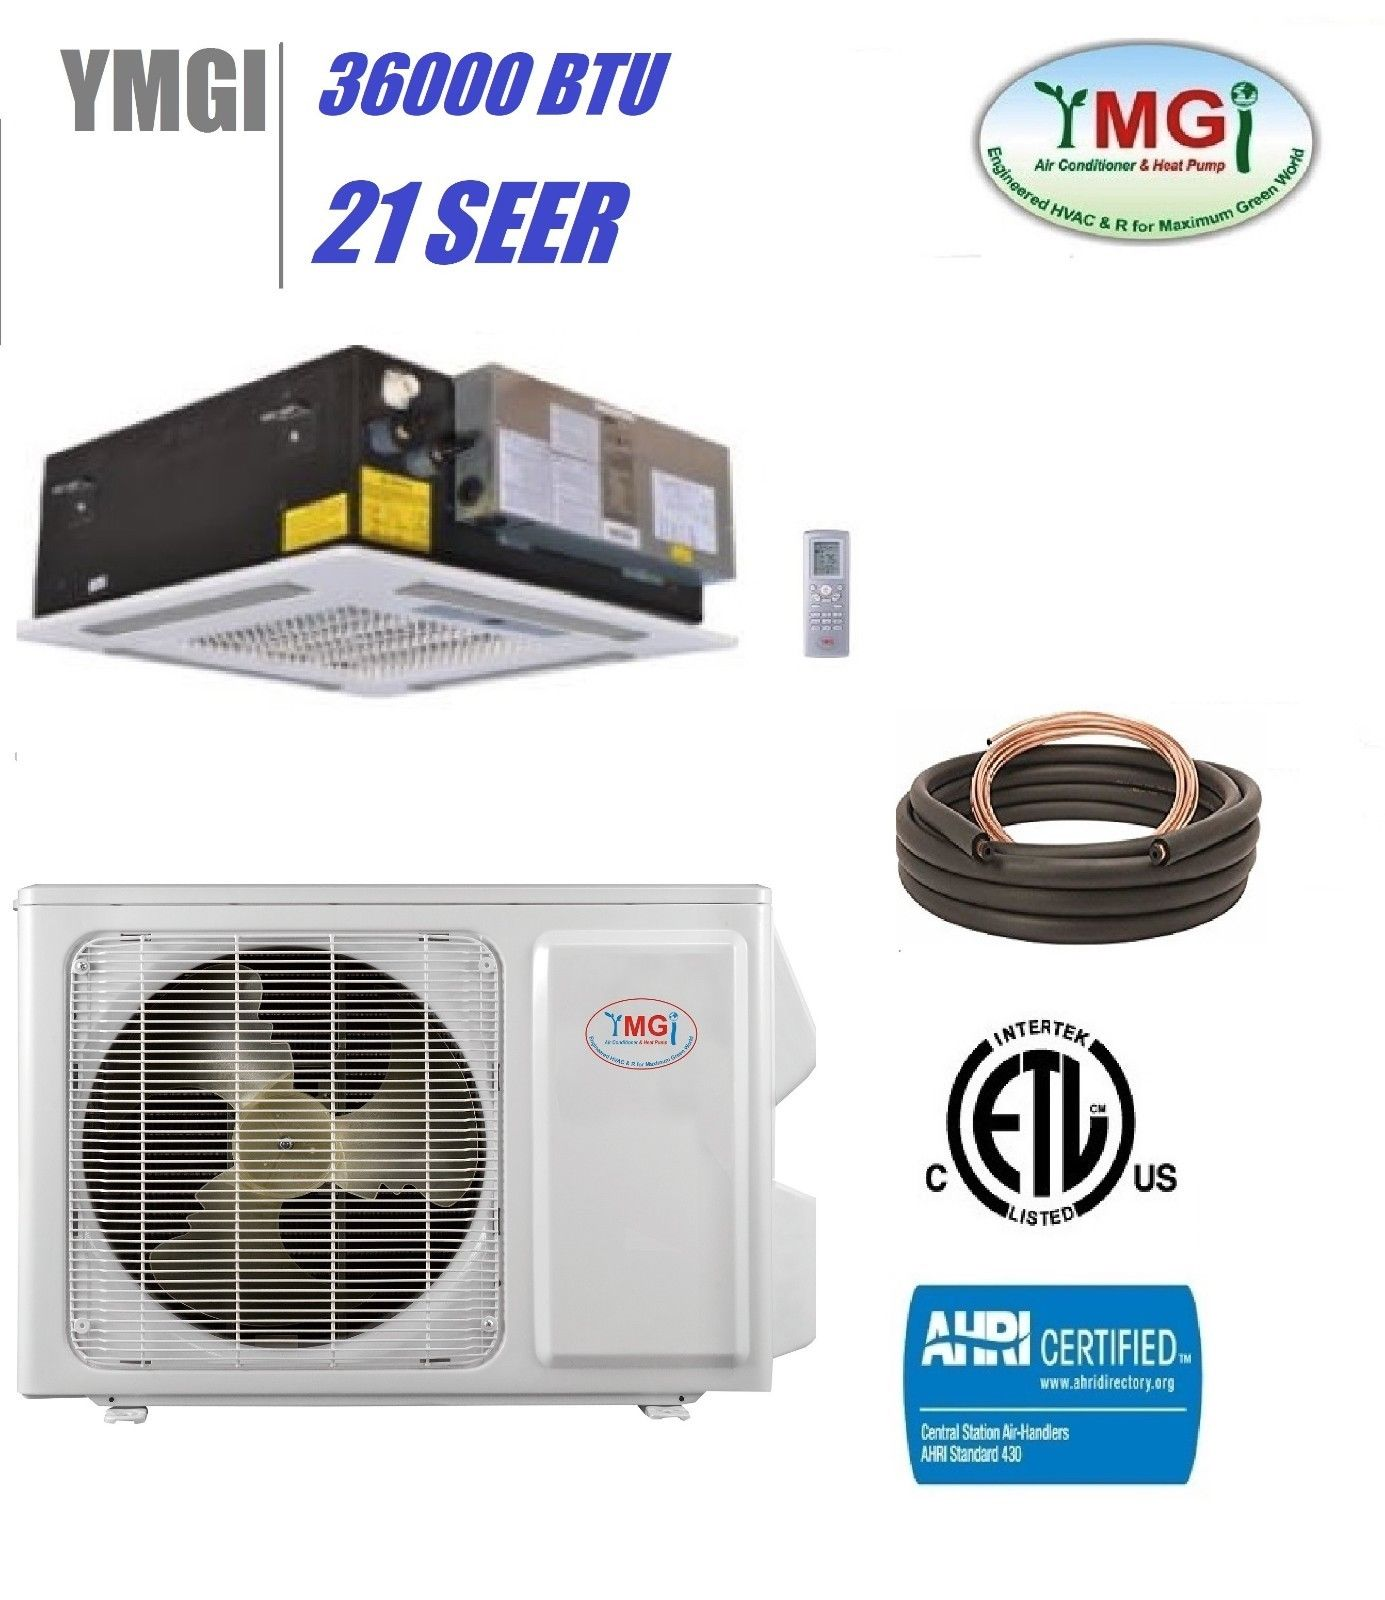 Ymgi 36000 Btu 21 Seer Ductless Mini Split Air Conditioner Heat Pump